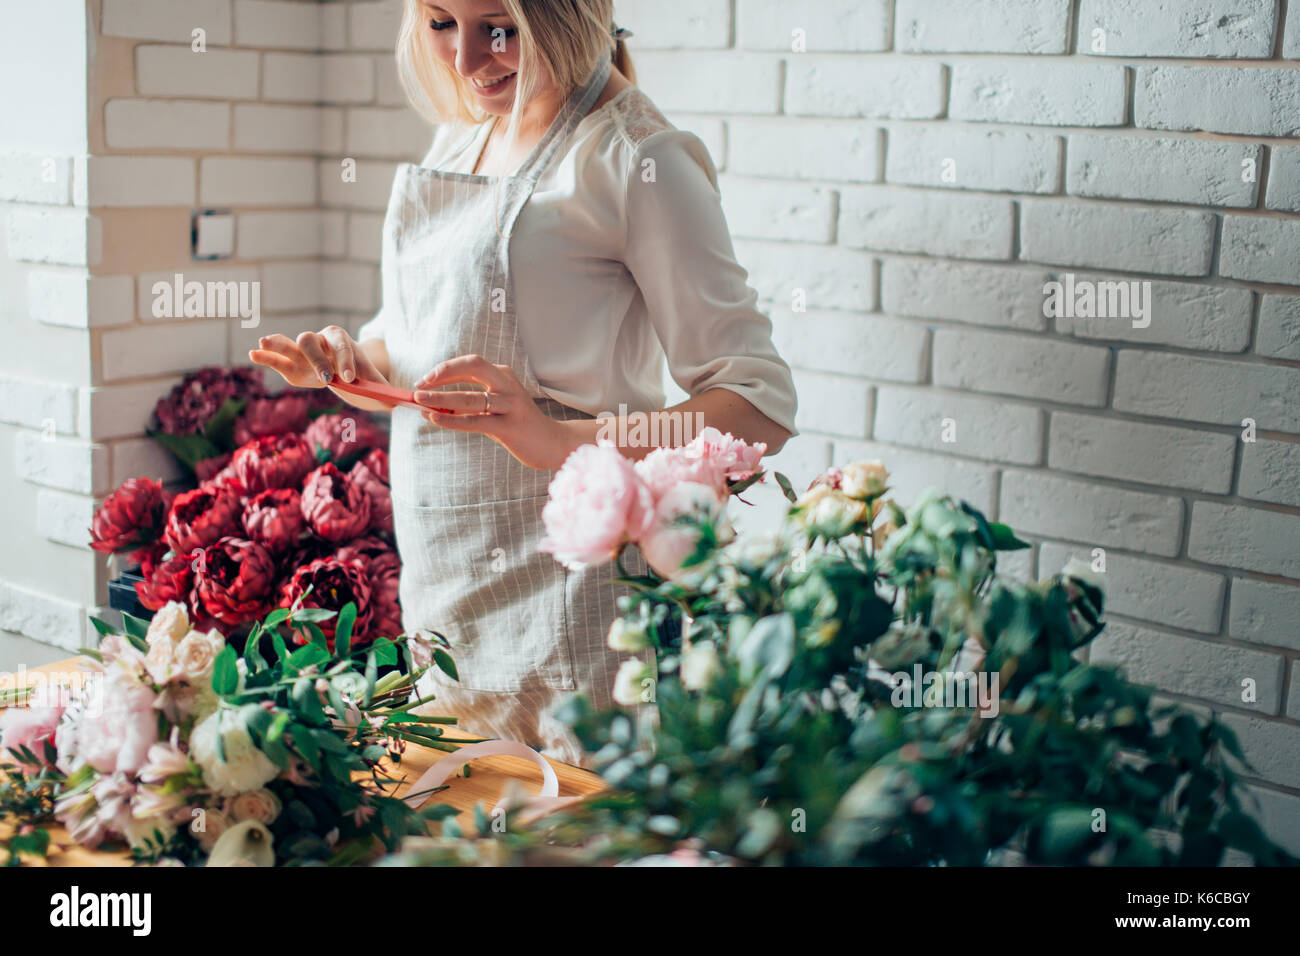 woman florist taking pictures of flowers with mobile phone - Stock Image